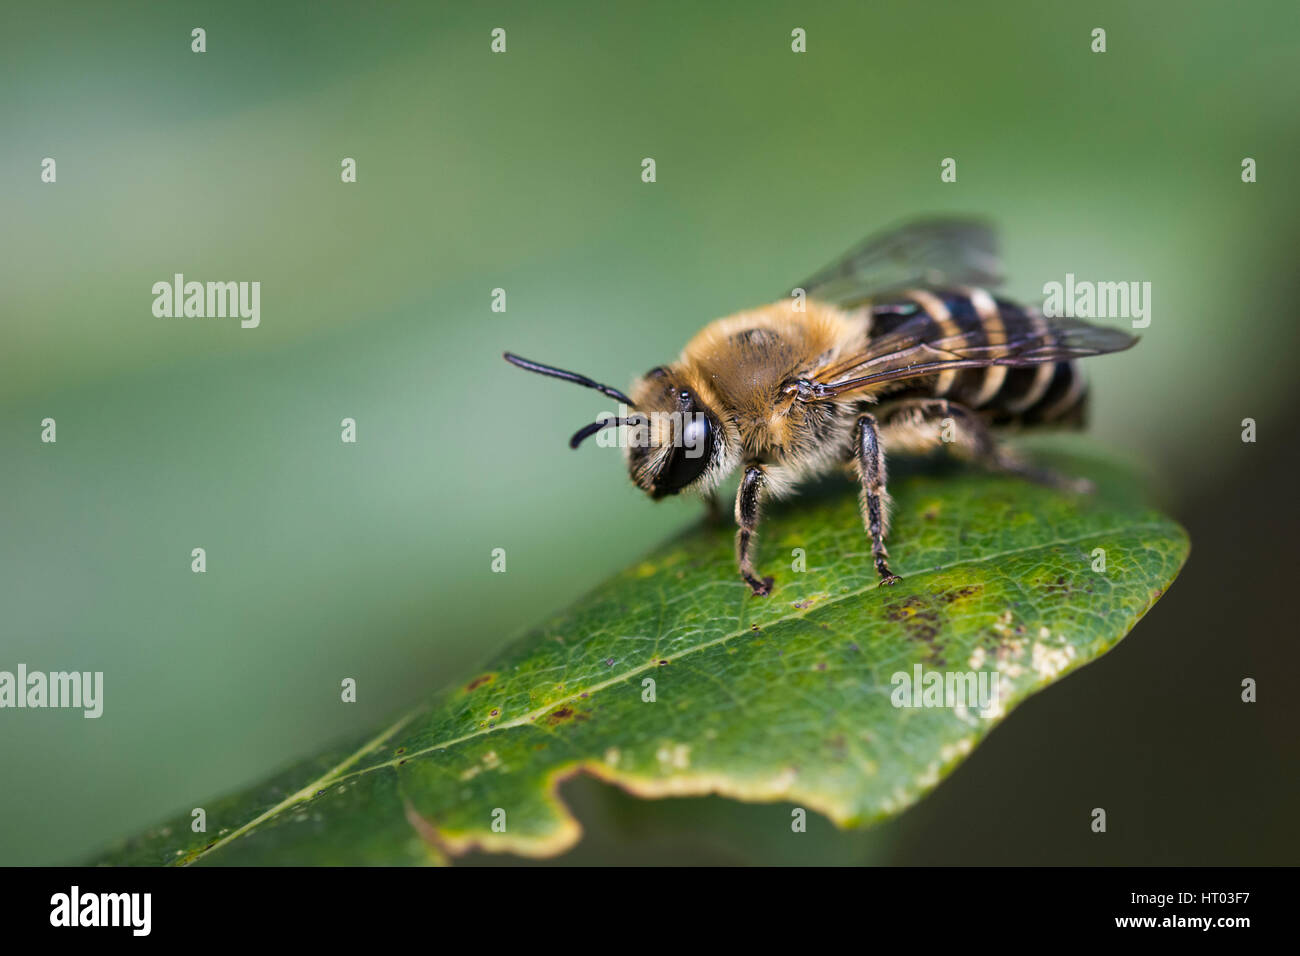 Ivy Mining Bee on a leaf - Cornwall, UK - Stock Image